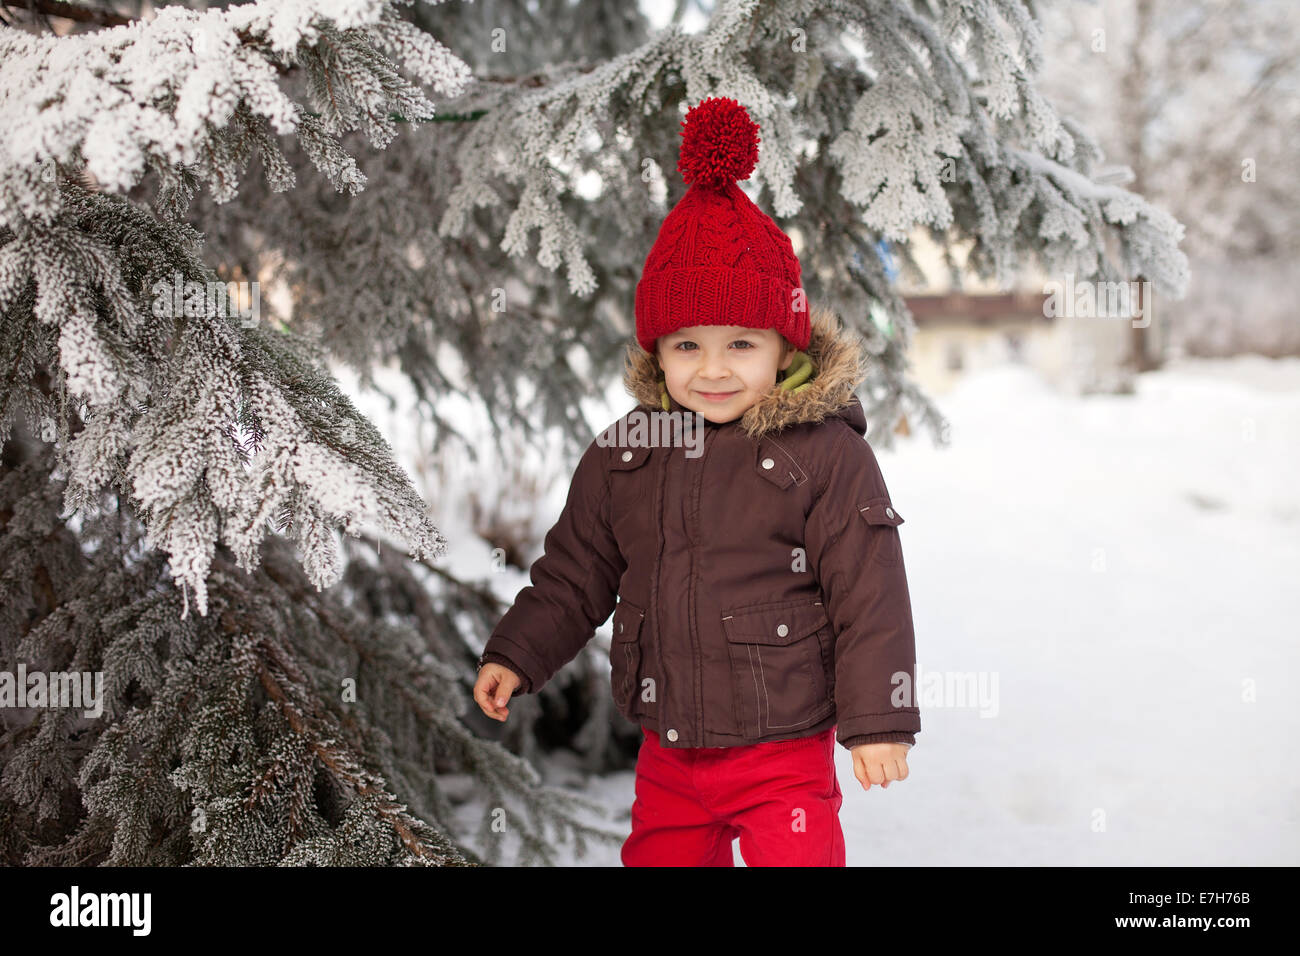 Portrait of child in brown jacket and red knitted hat and red trousers, lots of snow. Winter forest - Stock Image